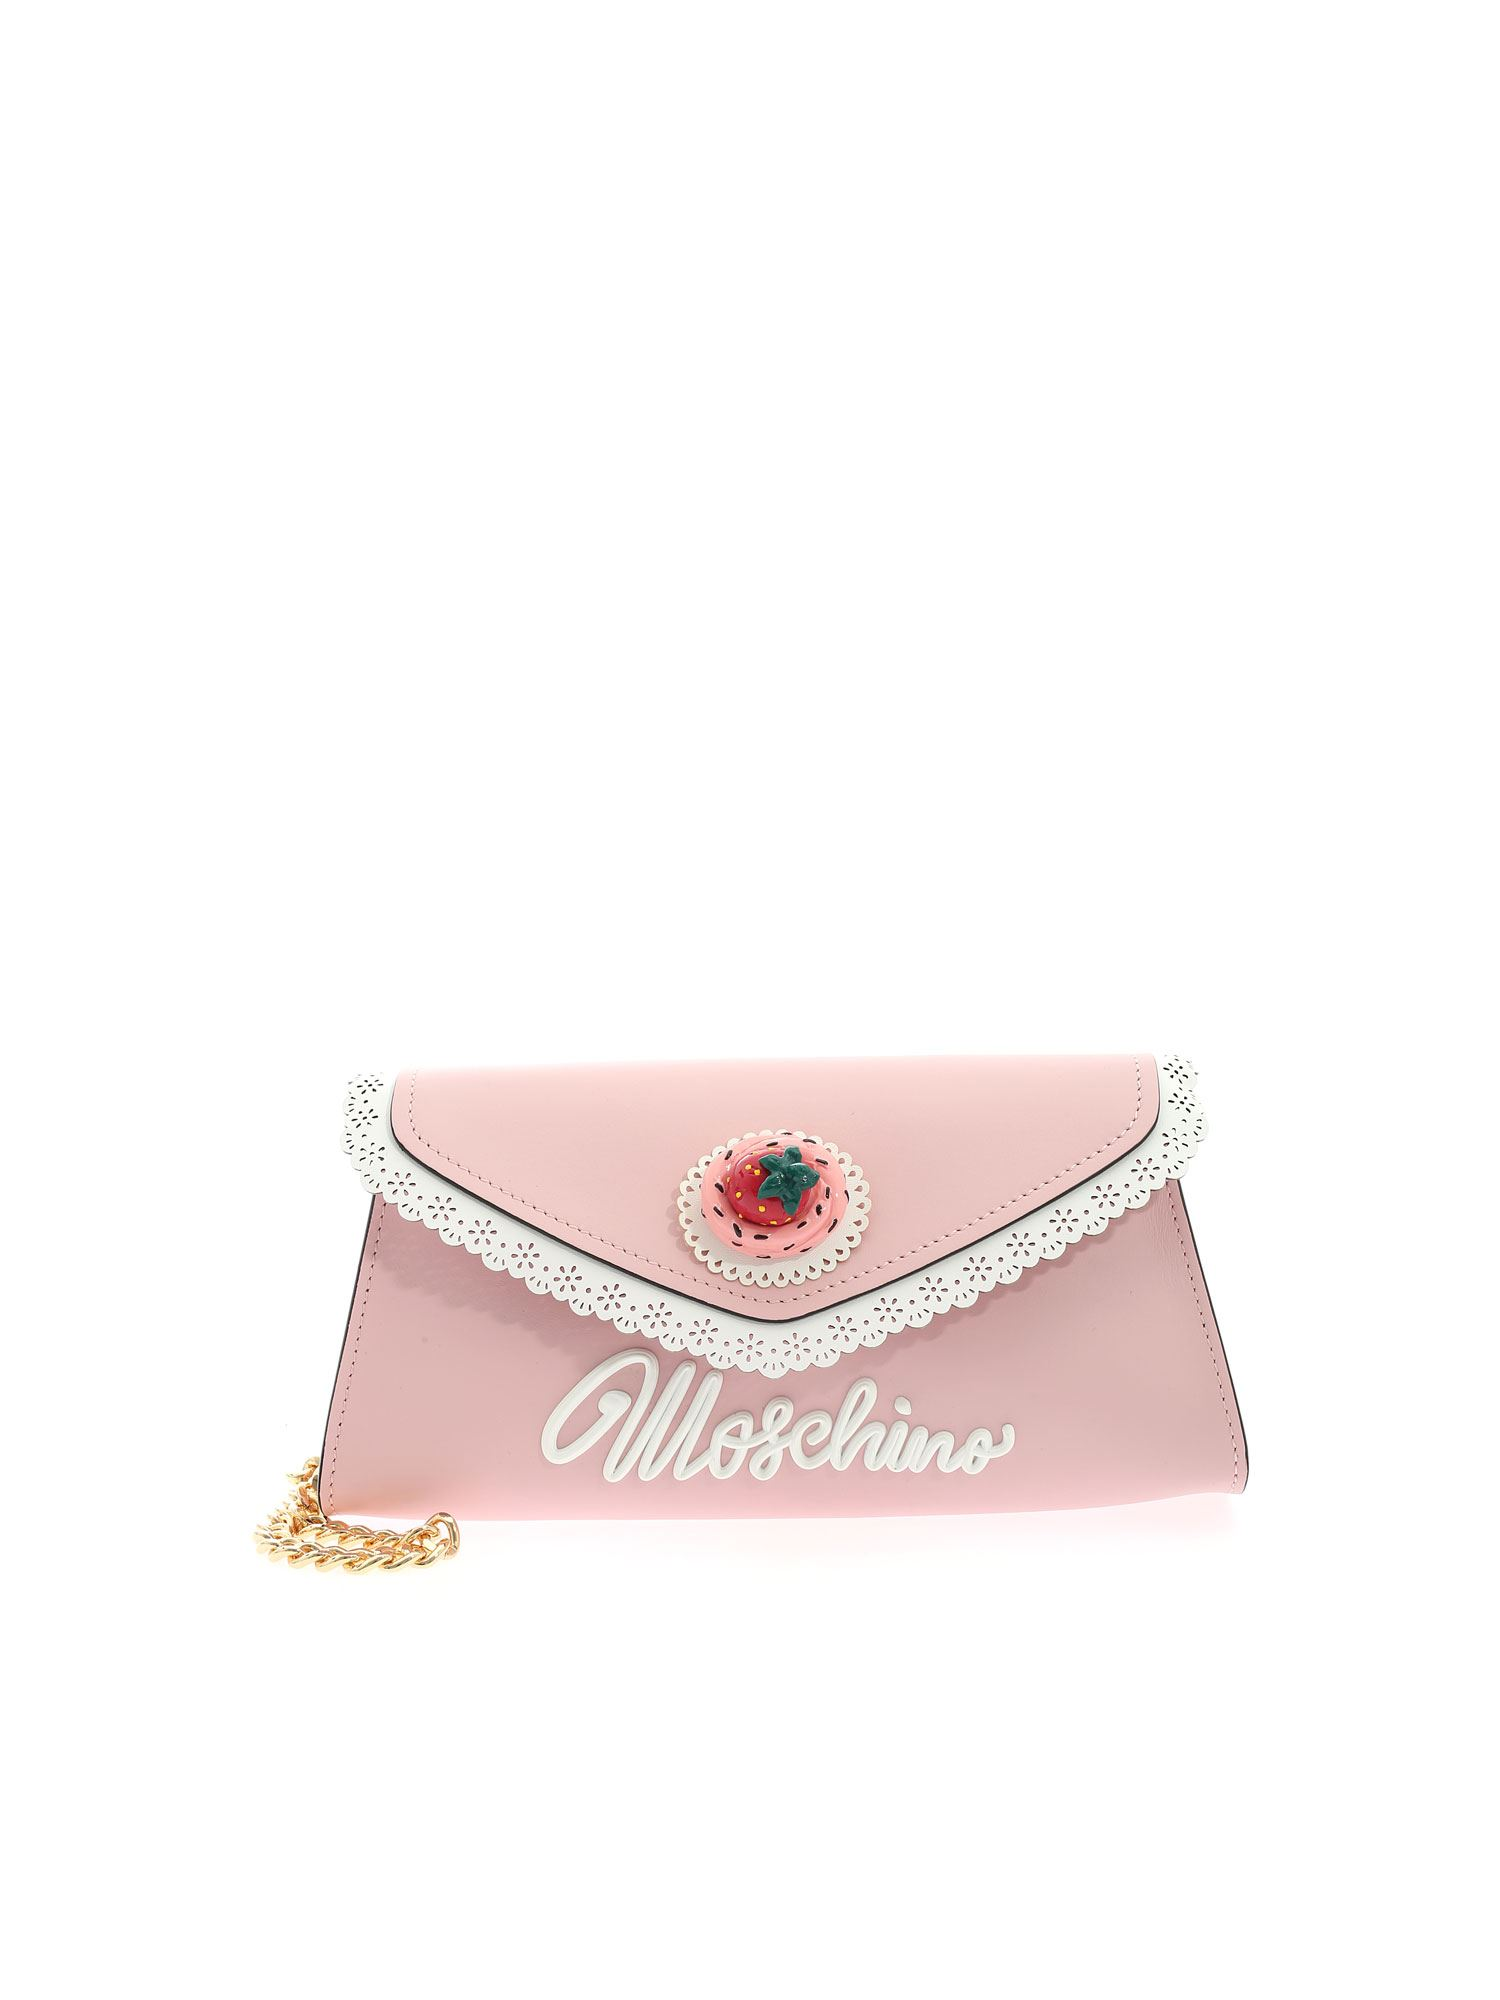 Moschino FROSTING EFFECT CLUTCH BAG IN PINK